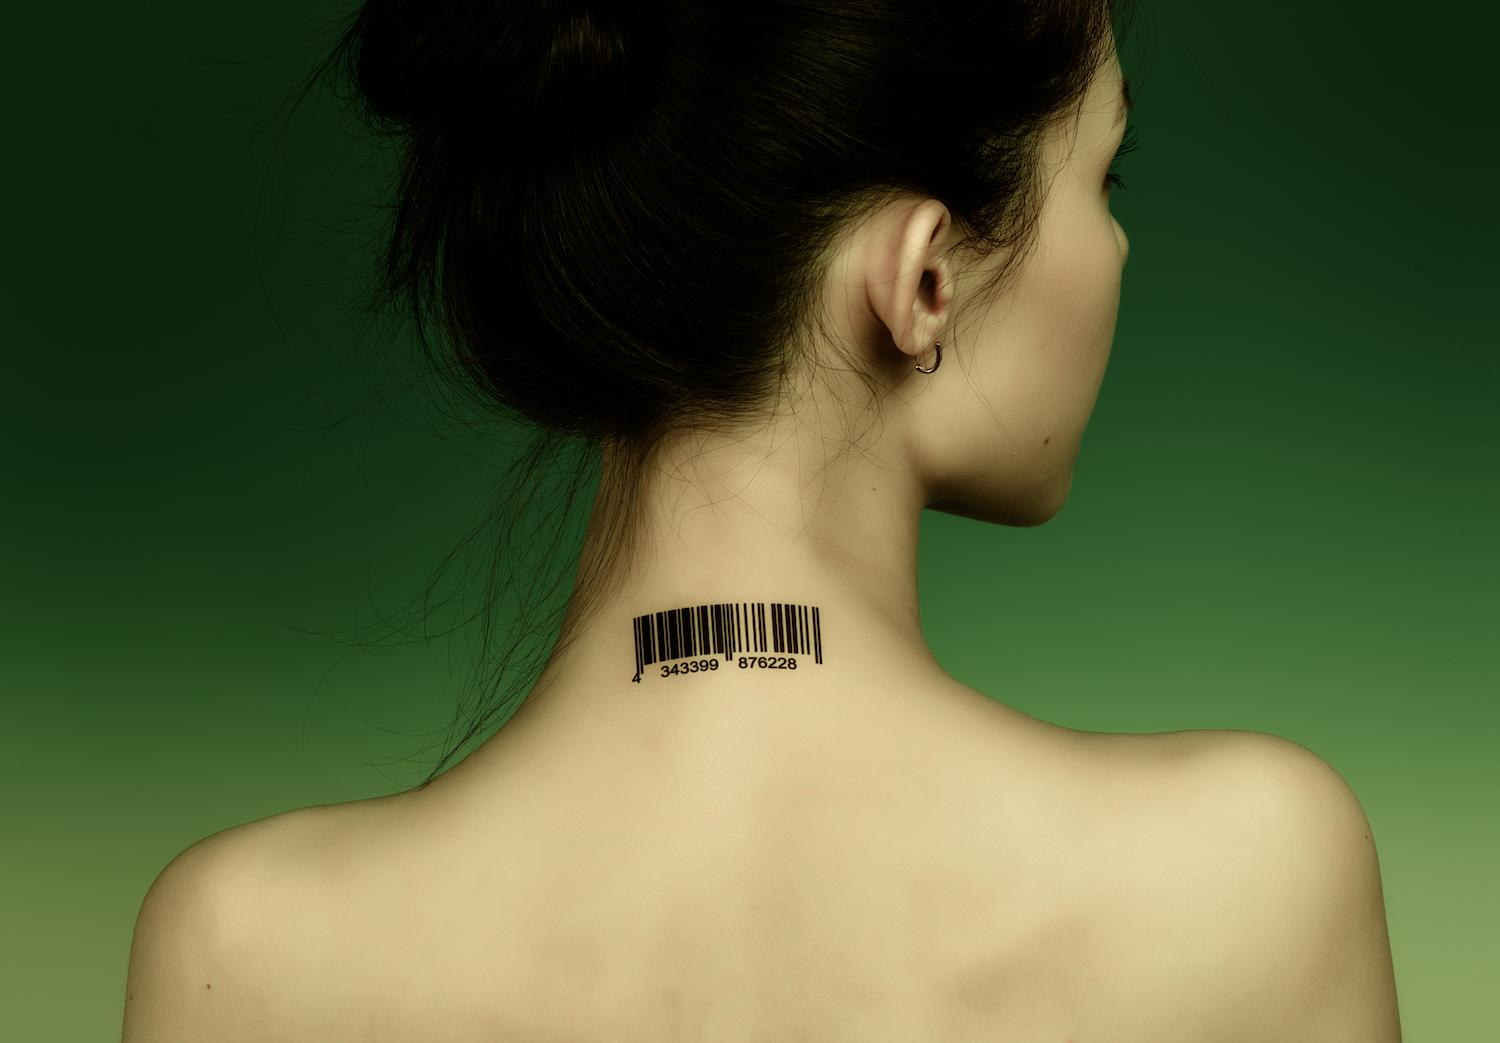 female-Neck-tattoo-motorola